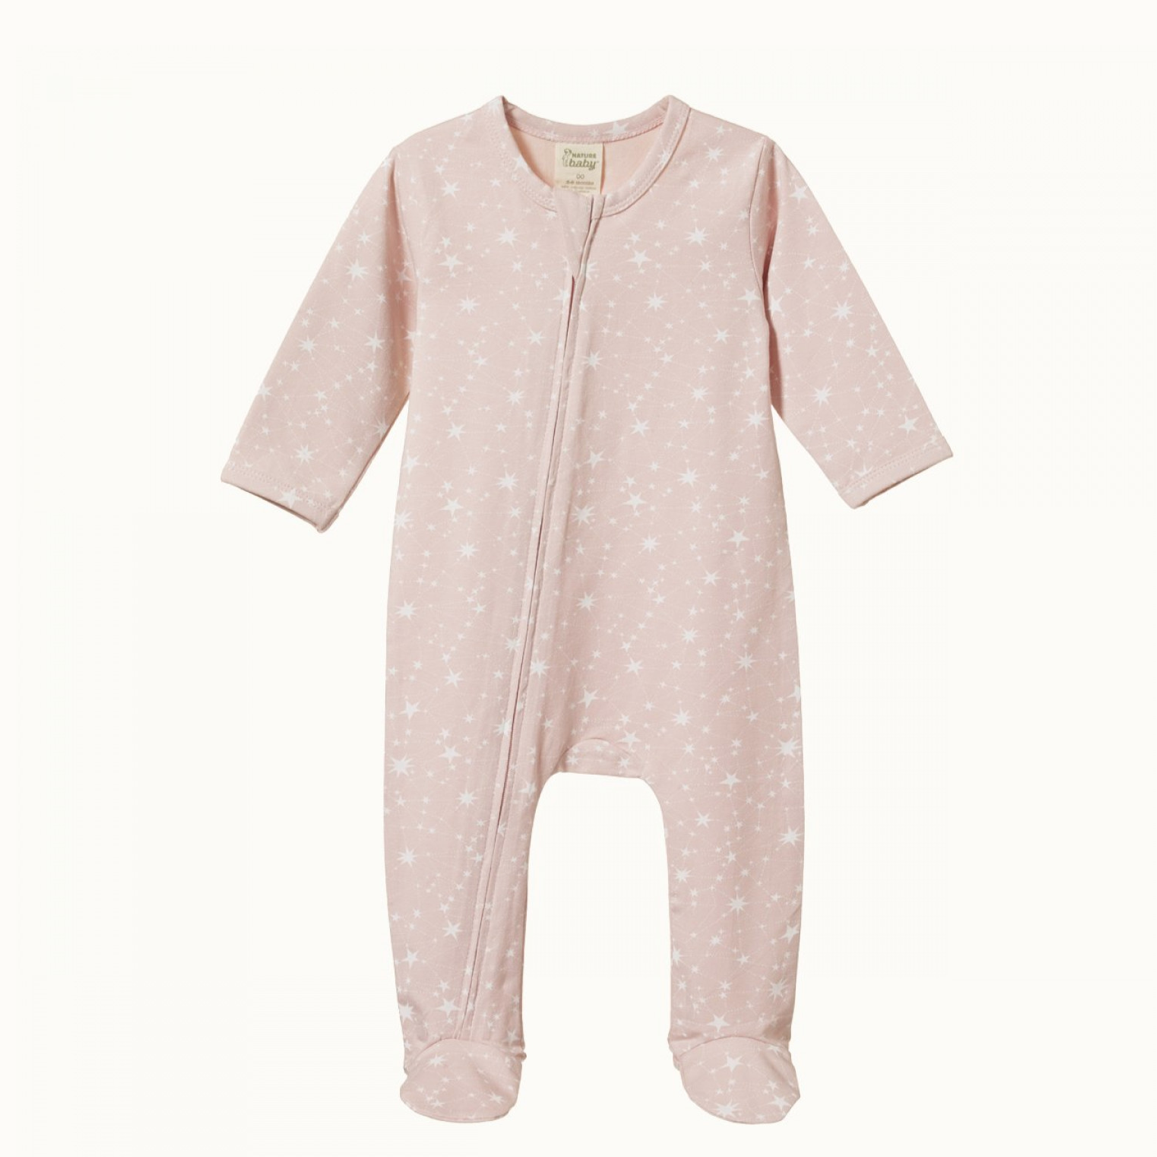 Nature Baby Dreamlands Suit in Stardust Print on Rosebud